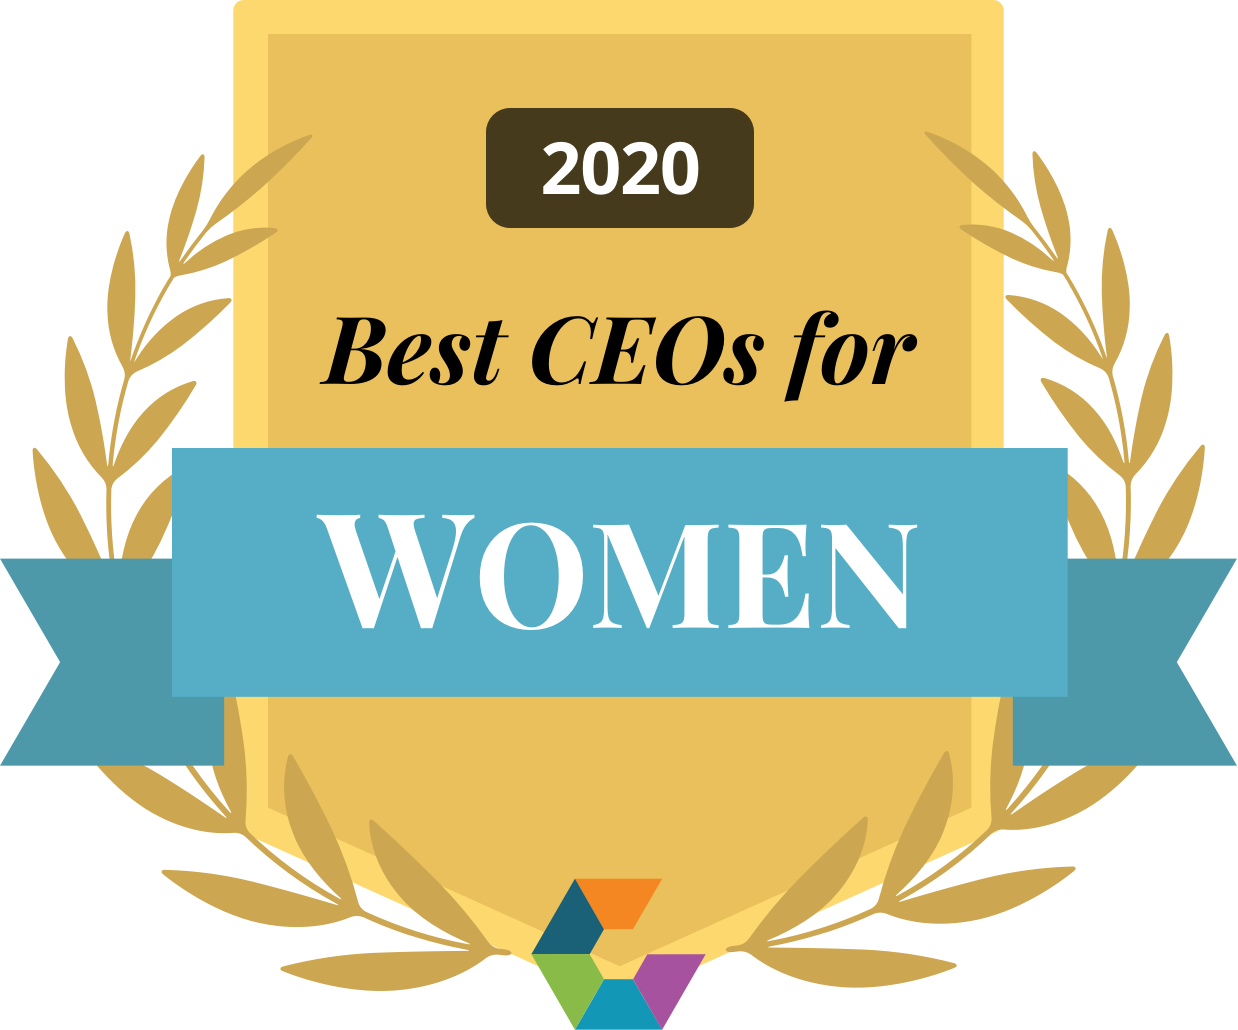 Comparably- Best CEOs for Women